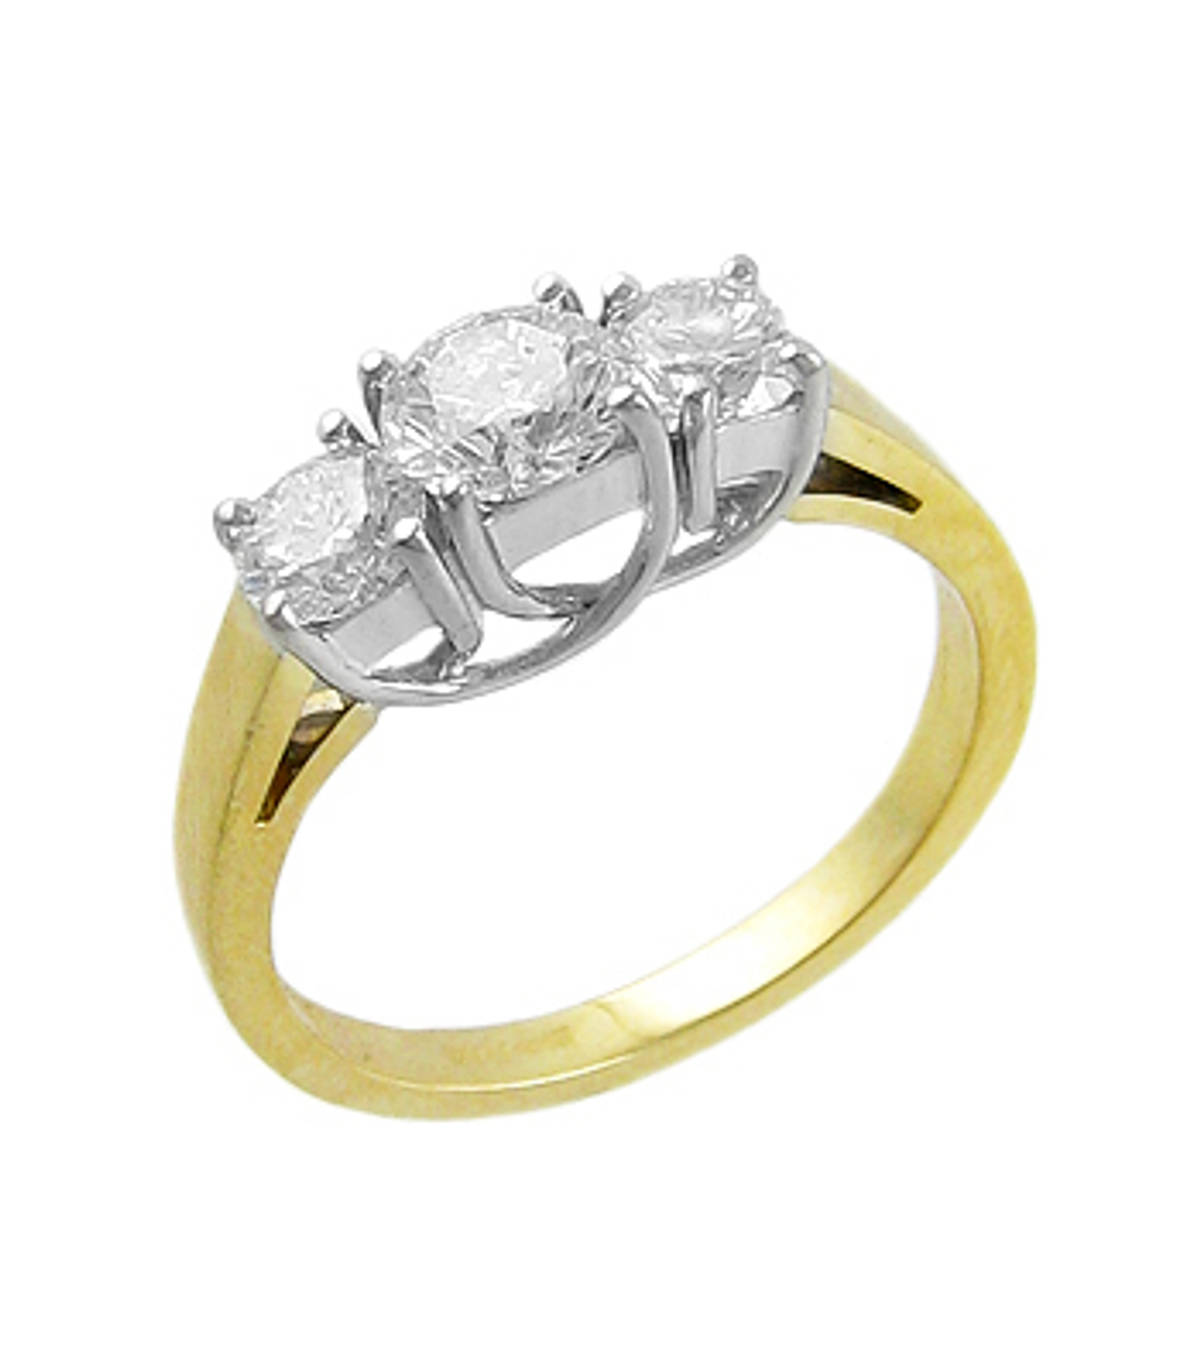 3 STONE DIAMOND RING 18k yellow & white gold 3st brilliant cut diamond ringDETAILSCarat: centre diamond 0.60cts / side 2 diamonds total 0.68ctsMetal: 18k yellow/white gold *Different sizes of diamonds available on request